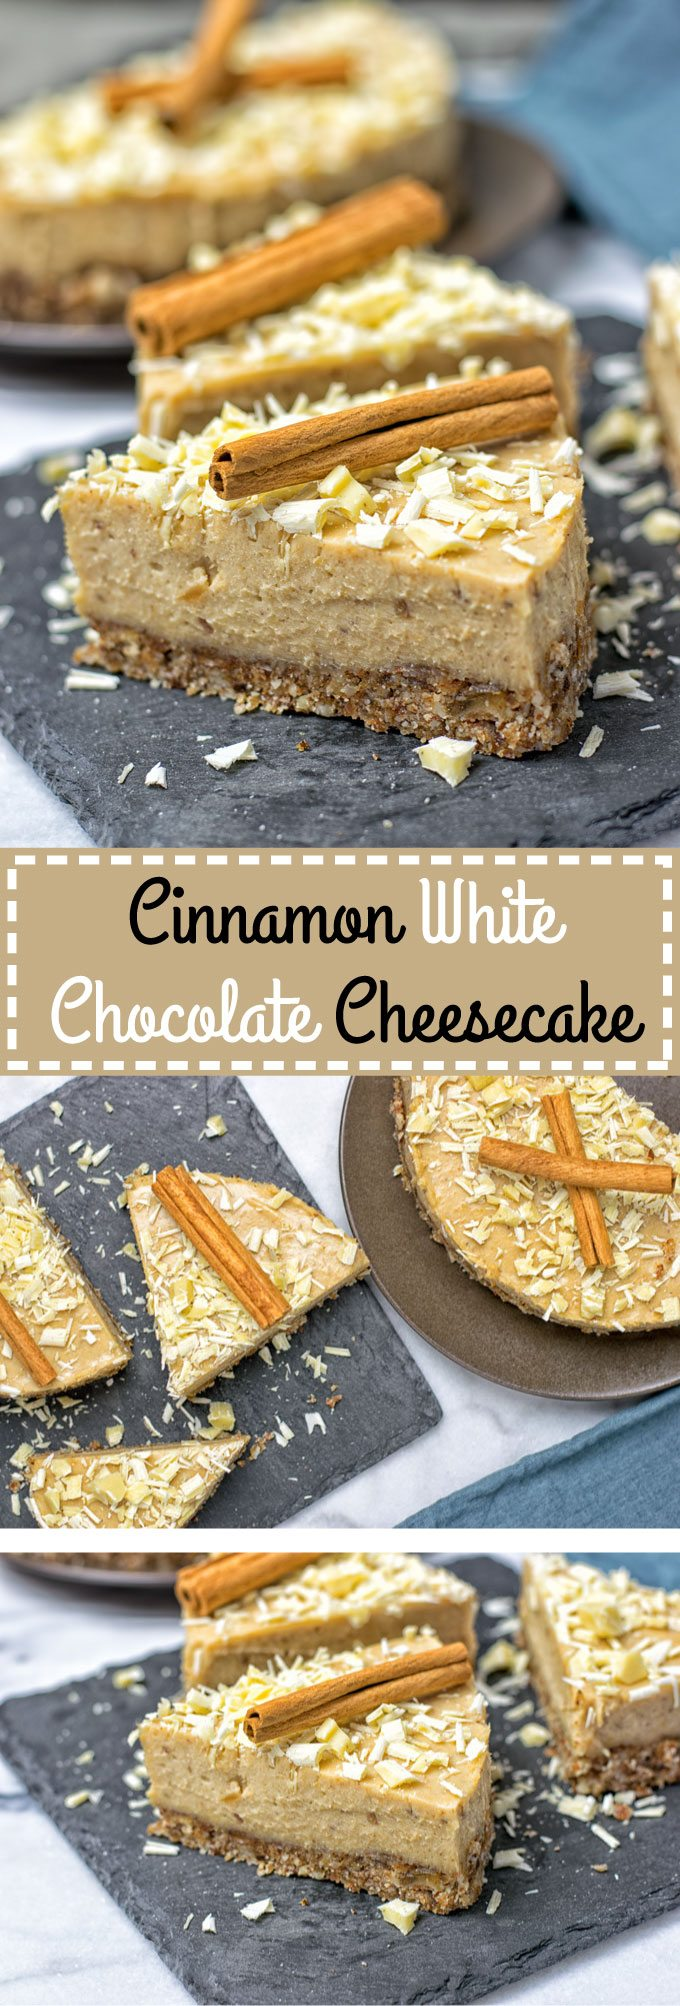 Collage of two pictures of Cinnamon White Chocolate Cheesecake with recipe title text.